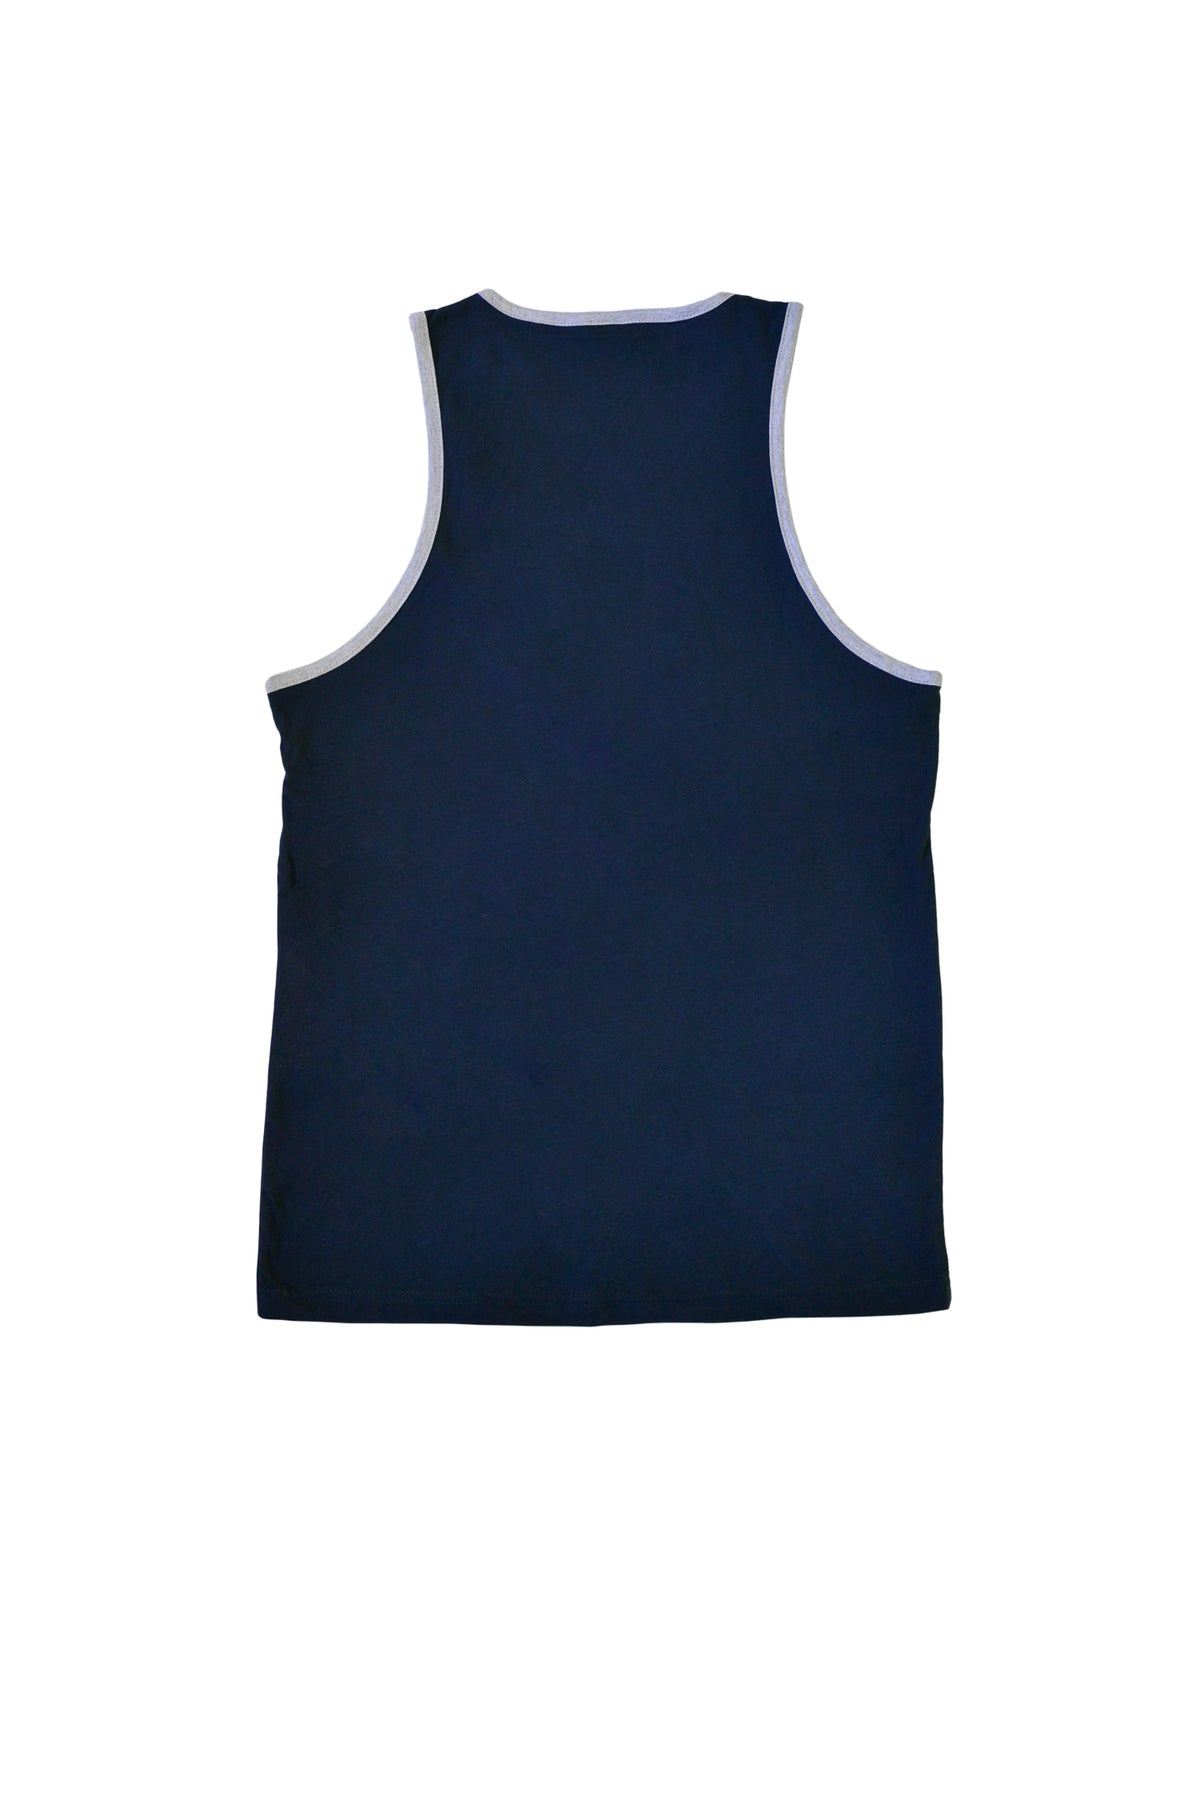 ALVA NAVY & HEATHER GREY OG LOGO TANK